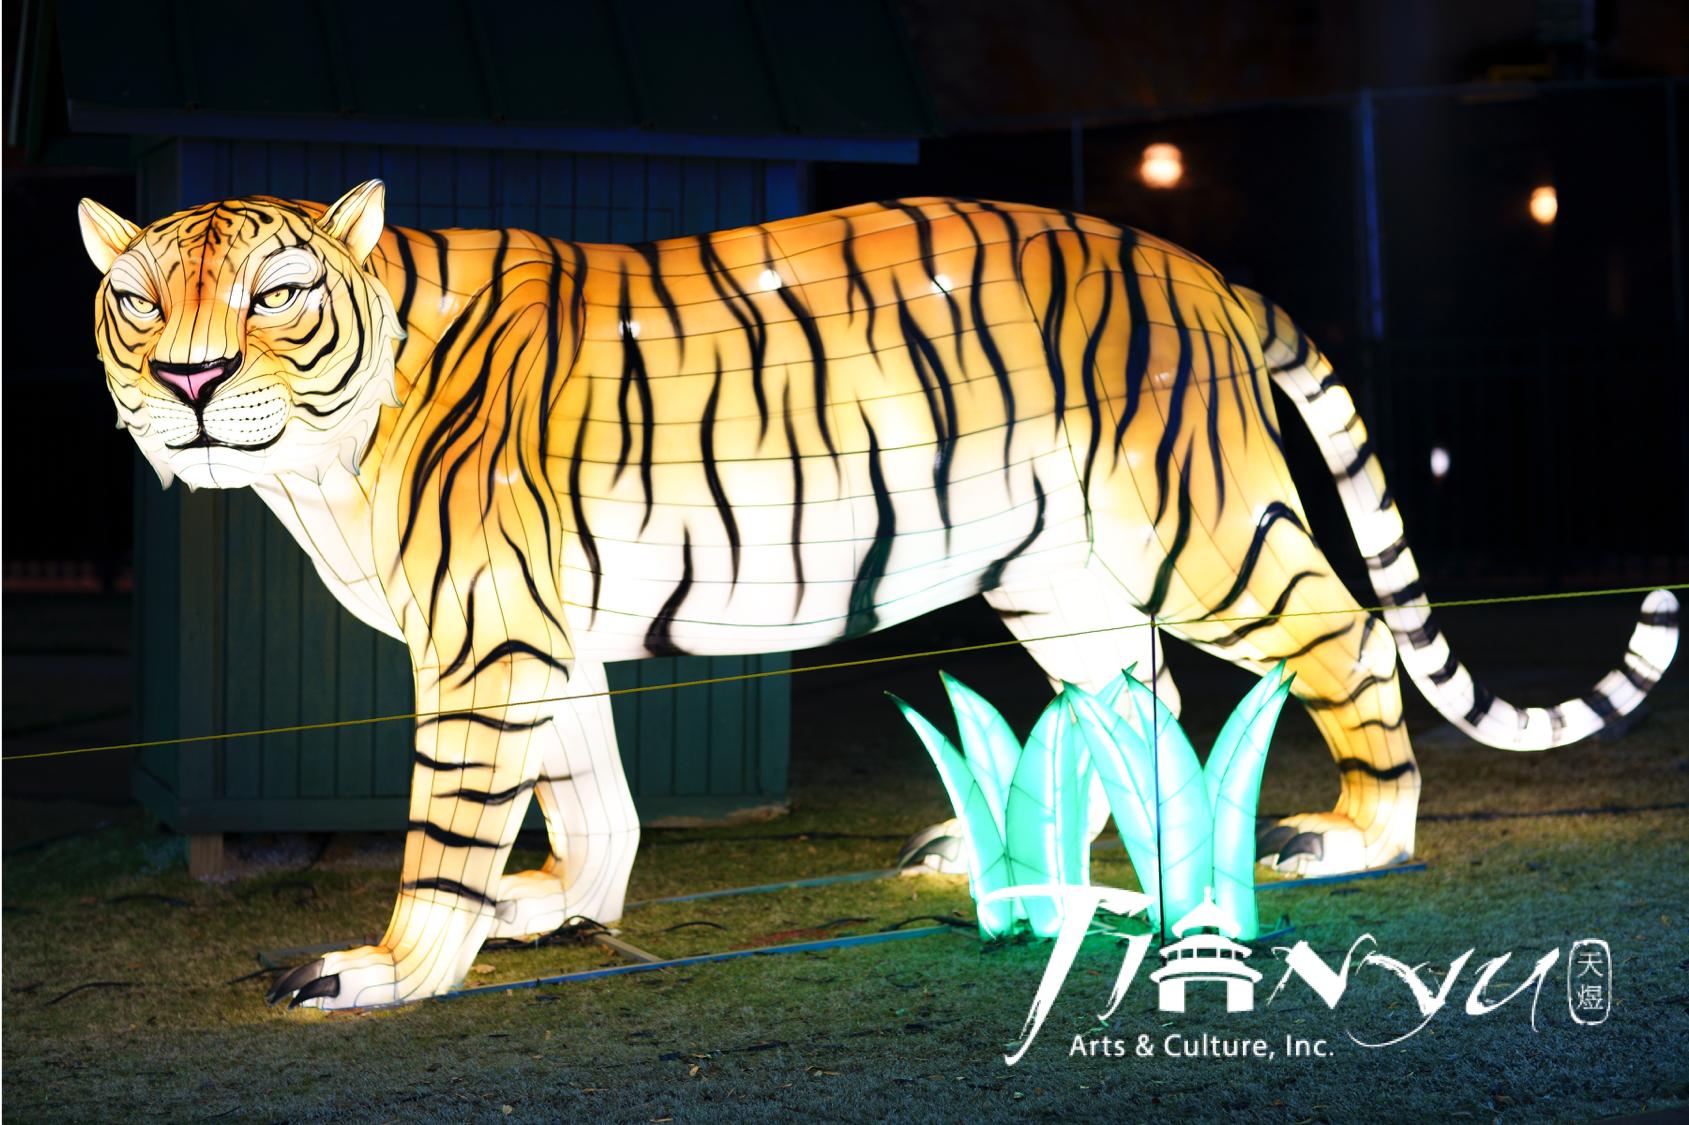 A larger than life tiger stares in the distance.